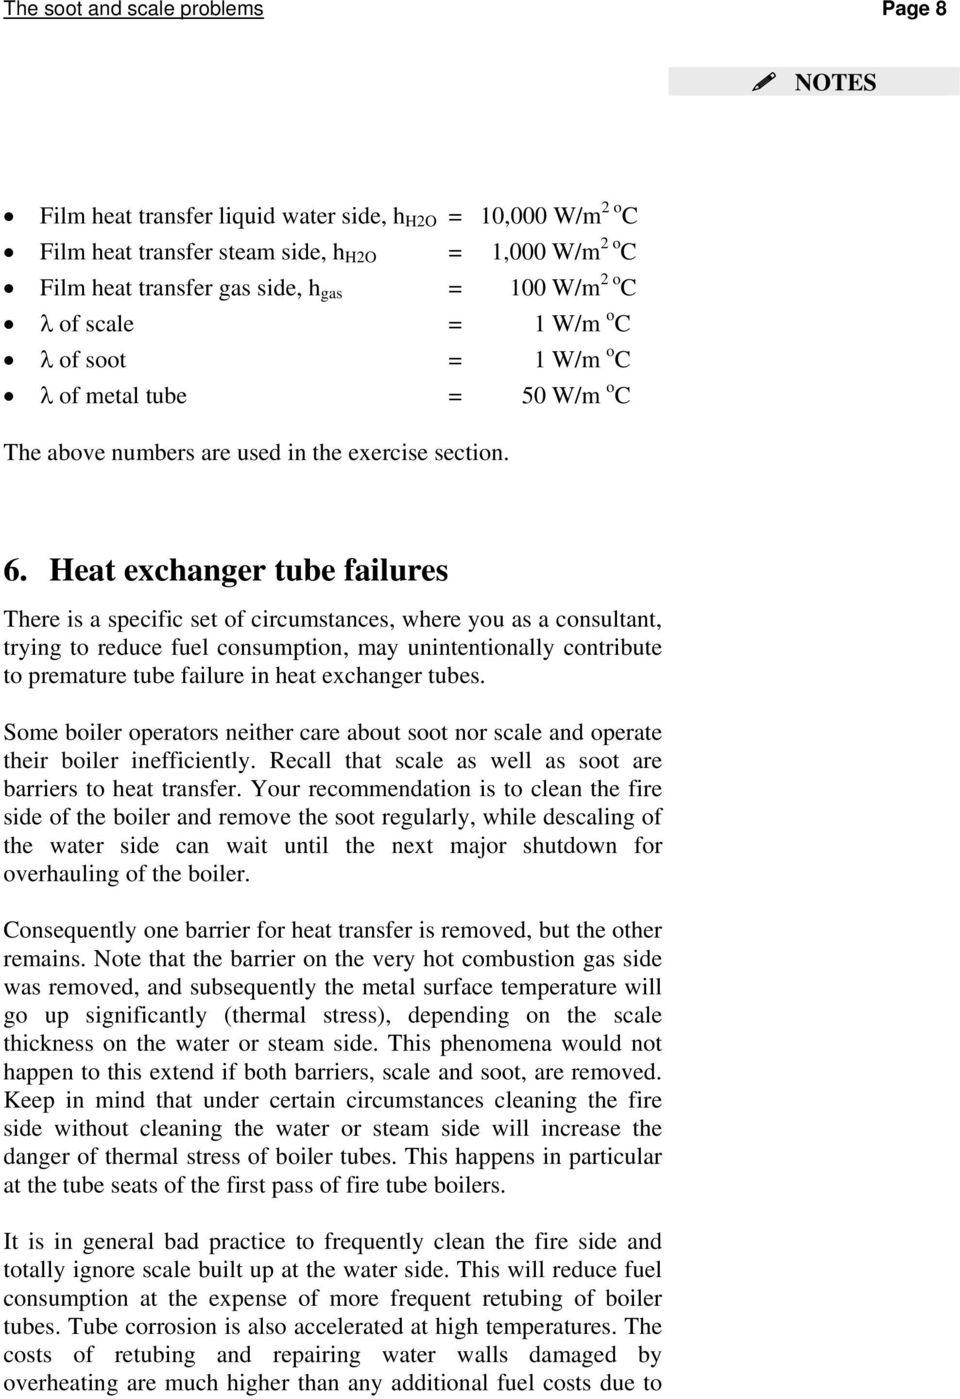 Heat exchanger tube failures There is a specific set of circumstances, where you as a consultant, trying to reduce fuel consumption, may unintentionally contribute to premature tube failure in heat